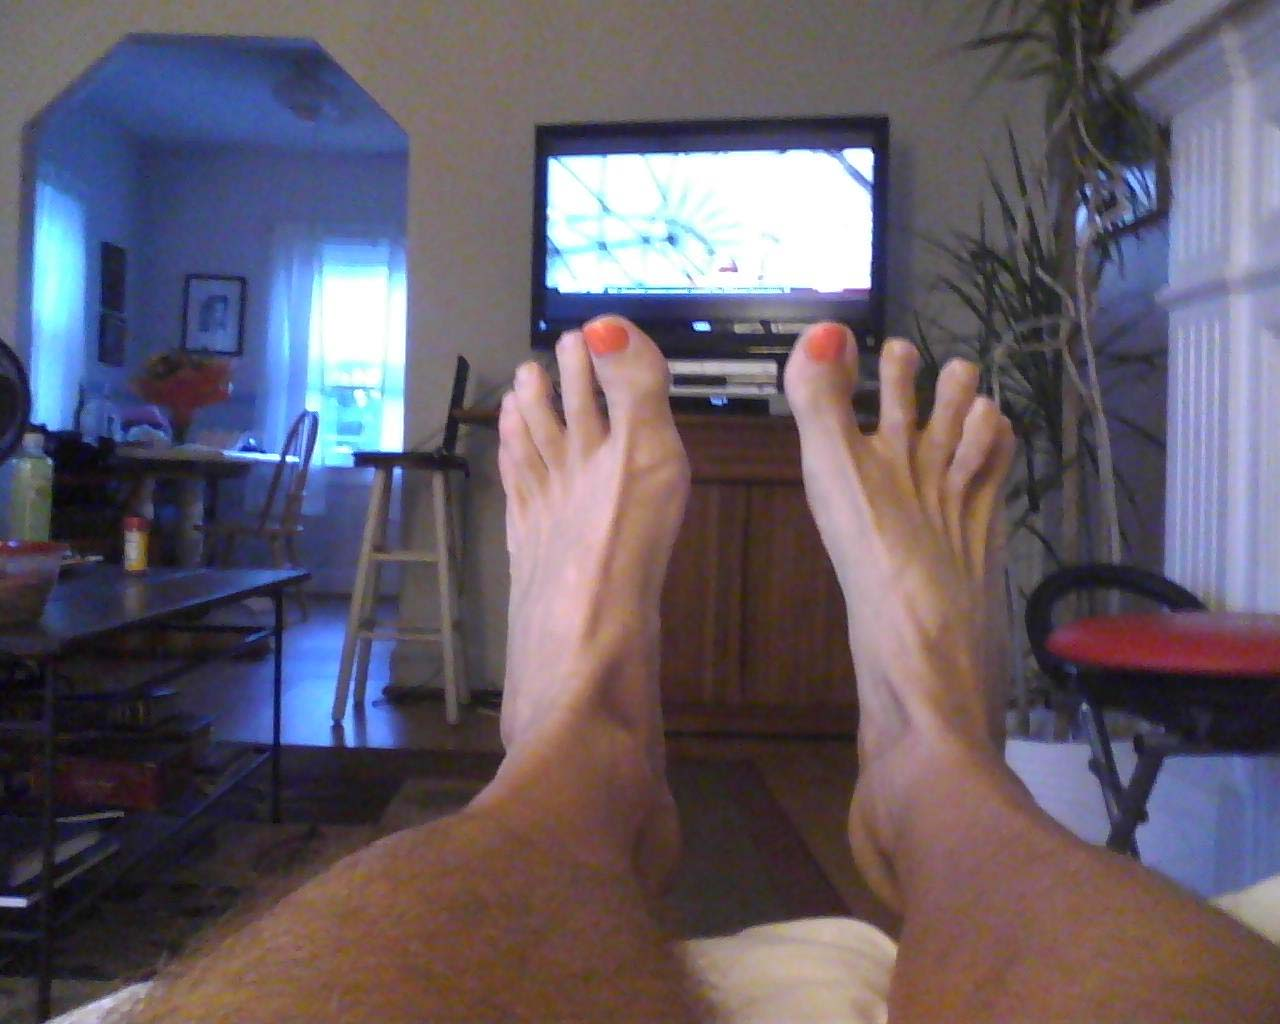 So Here I Am Sitting Watching My Tennessee Vols And Leah Brings Out The Paint Brush S Toenails With Orange Scored On Play